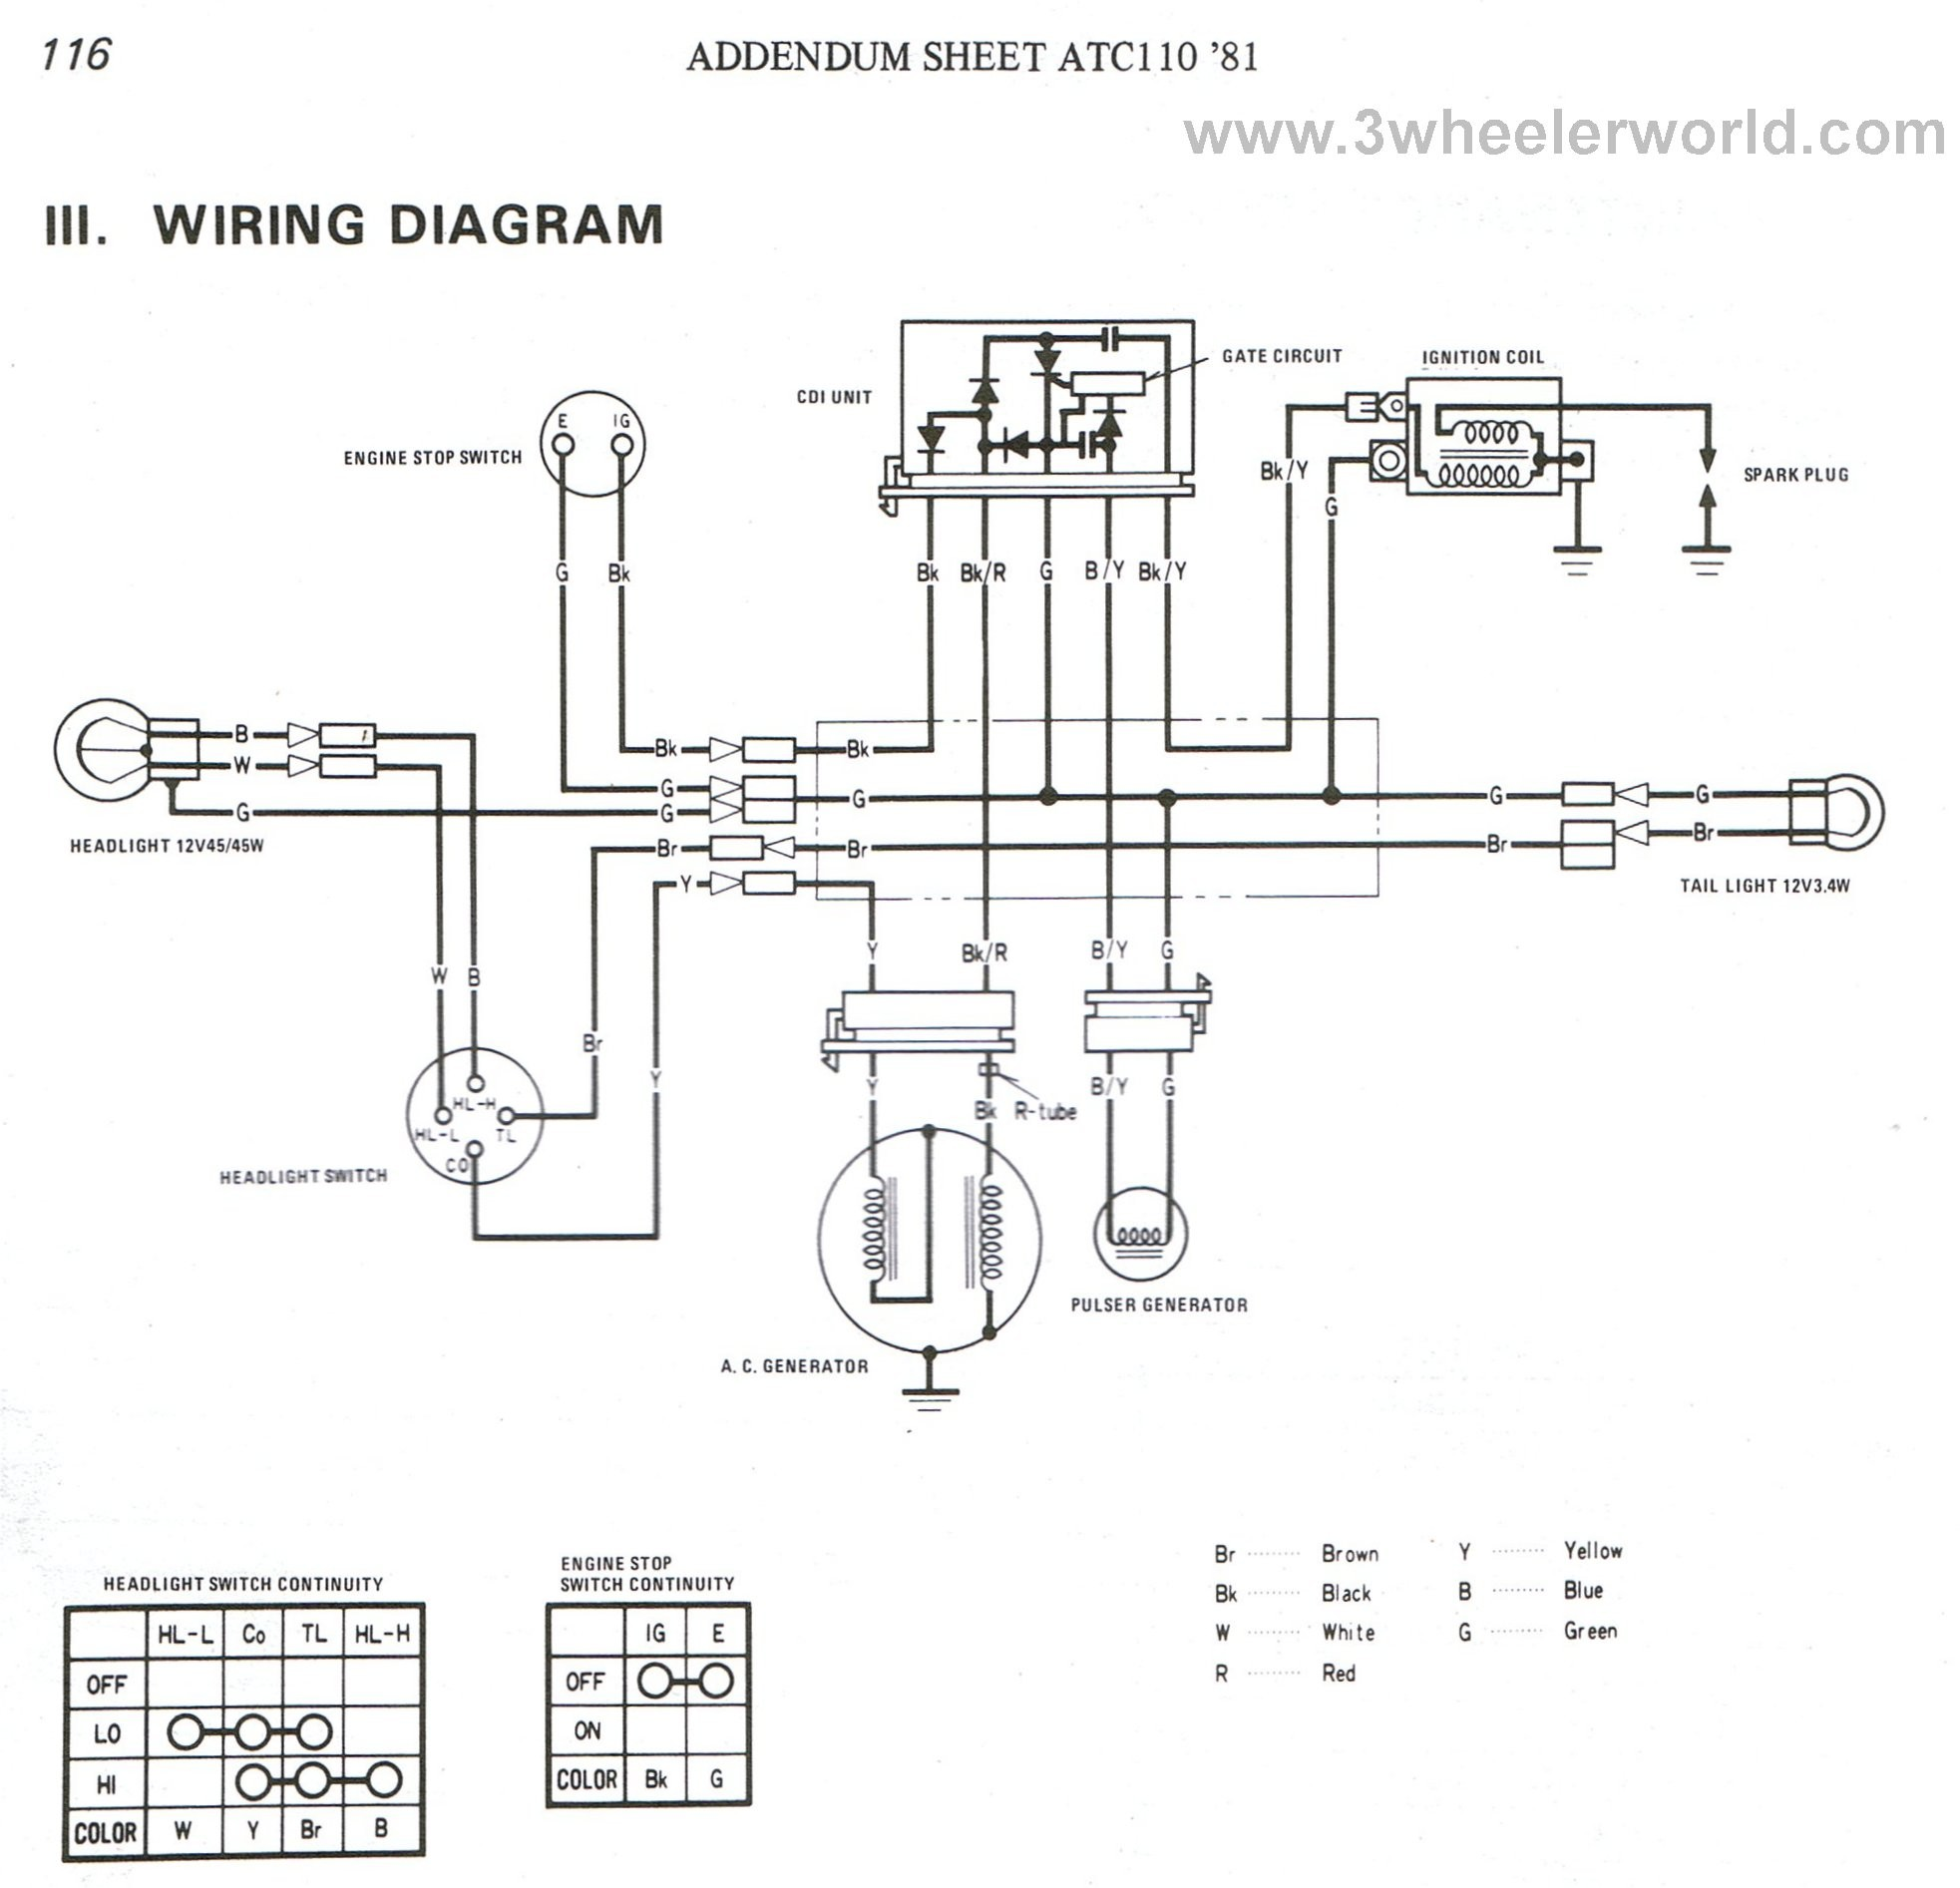 Wiring Diagram For A 50cc Pit Bike Diy Enthusiasts Diagrams Harness Honda Dirt Info U2022 Rh Defentic Co